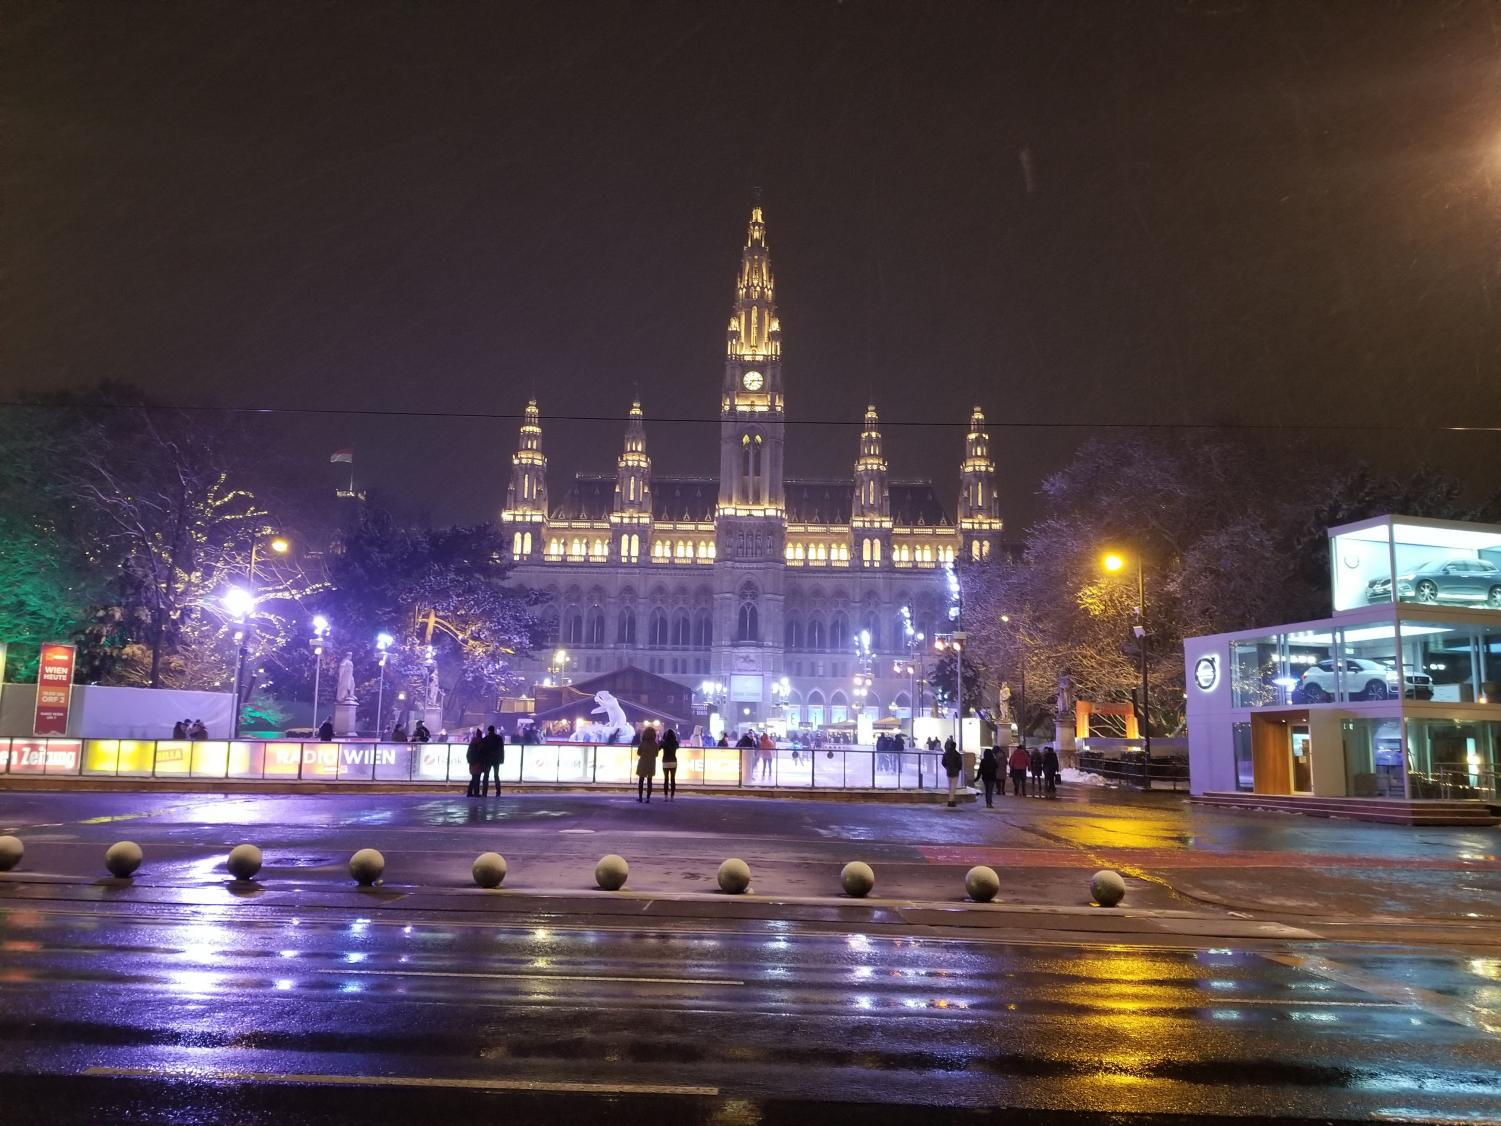 The Vienna city hall glows beautifully during a fun night of ice skating.